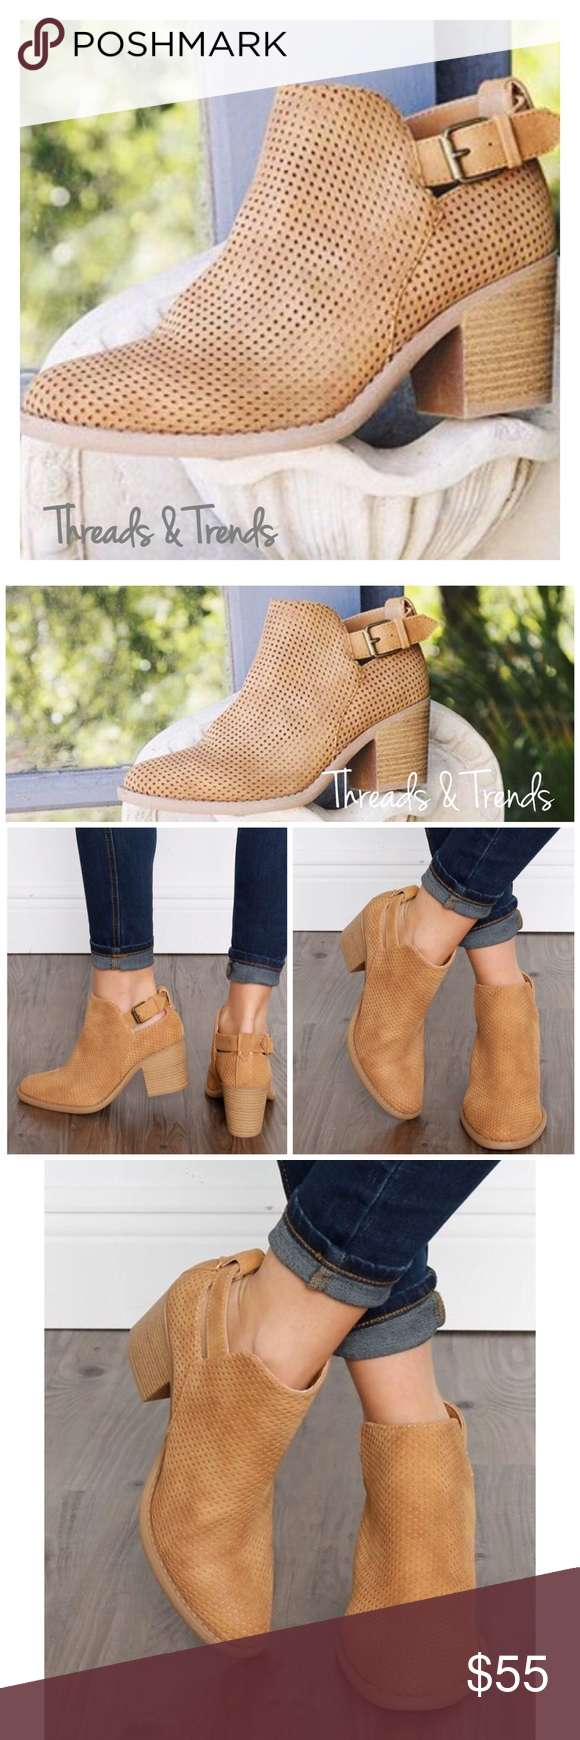 "‼️LAST PAIR‼️Taupe Suede Fringe Booties Taupe tan fringe booties.                                                      Material: Faux Suede (Man-Made) Heel Height: 1.75"" (Approx) Shaft Length: 6.35"" (Including heel) Top Opening 10.5"" Sole/padding: Synthetic Non-skid Sole Threads & Trends Shoes Ankle Boots & Booties"